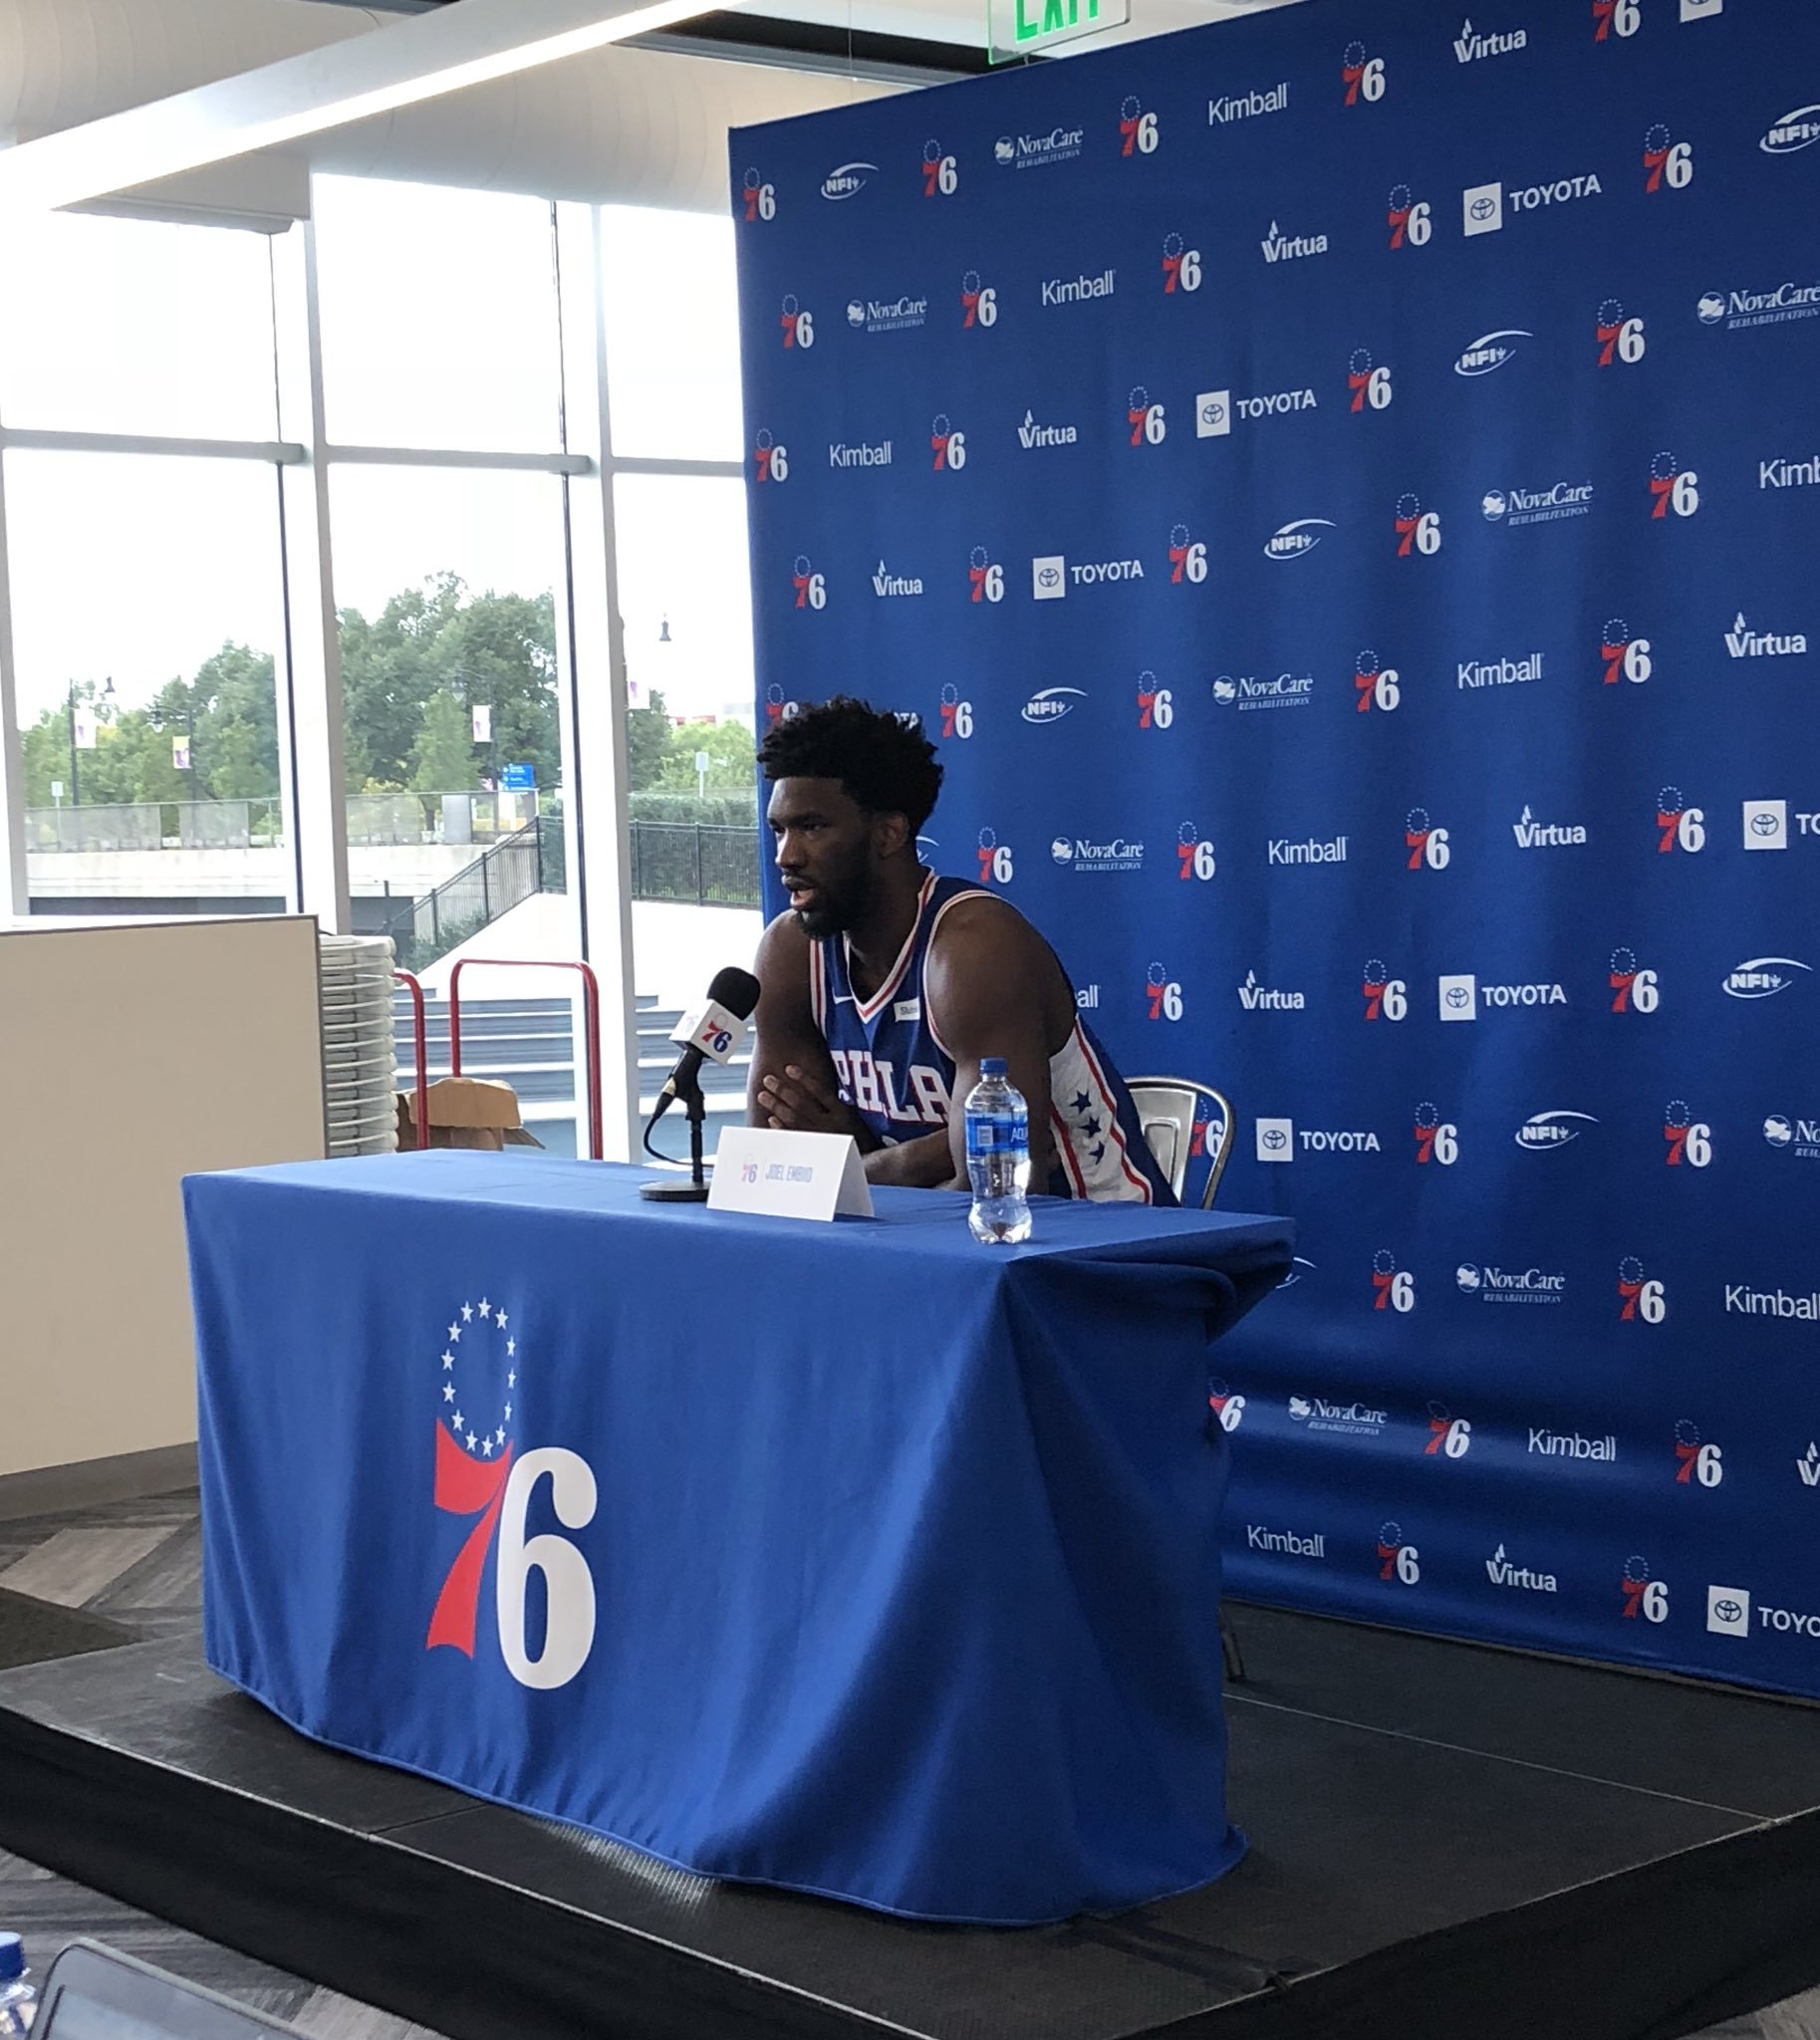 Joel Embiid meets the media.   @sixers take on the @dallasmavs for #NBAChinaGames Oct. 5 & Oct. 8. https://t.co/oiKrtelApk